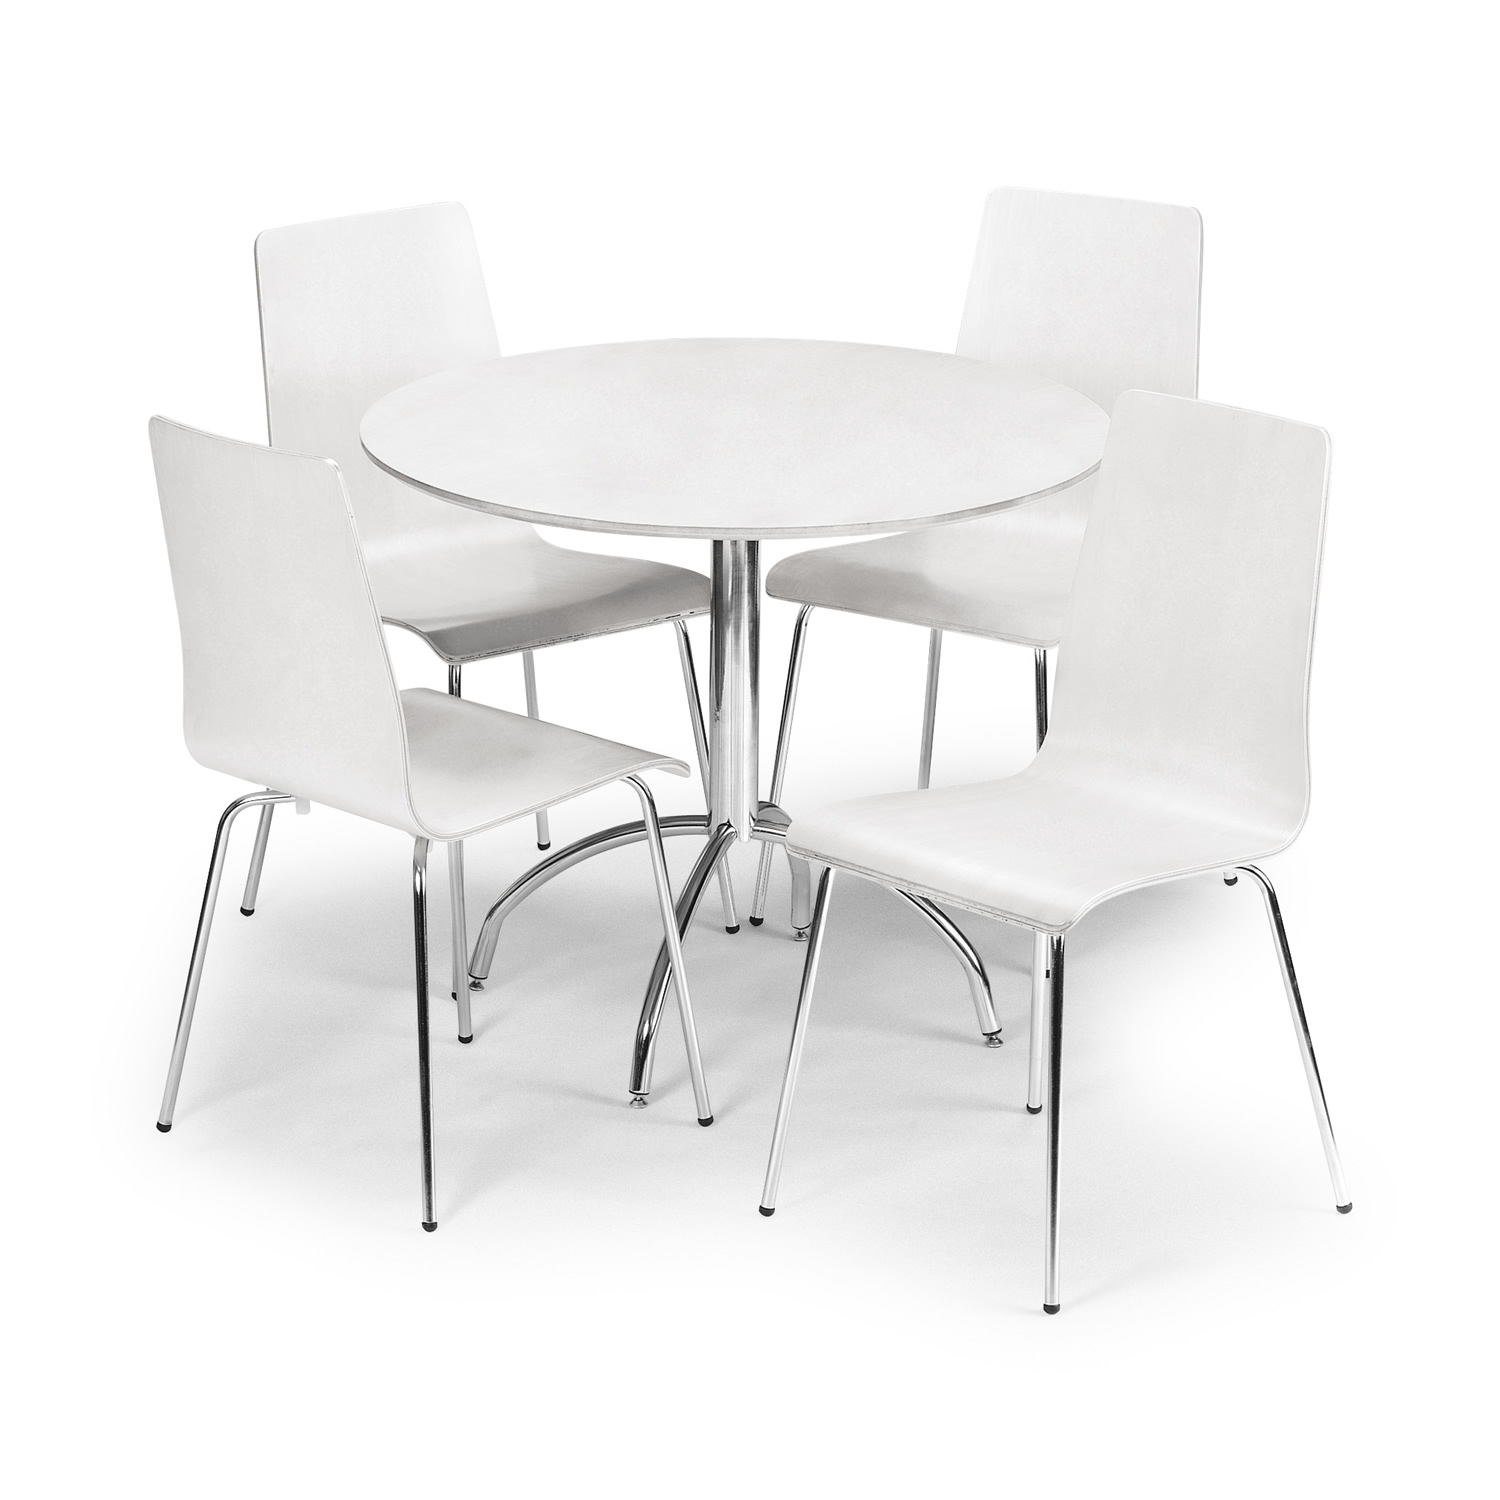 White Kitchen Tables And Chairs: Beautiful White Round Kitchen Table And Chairs